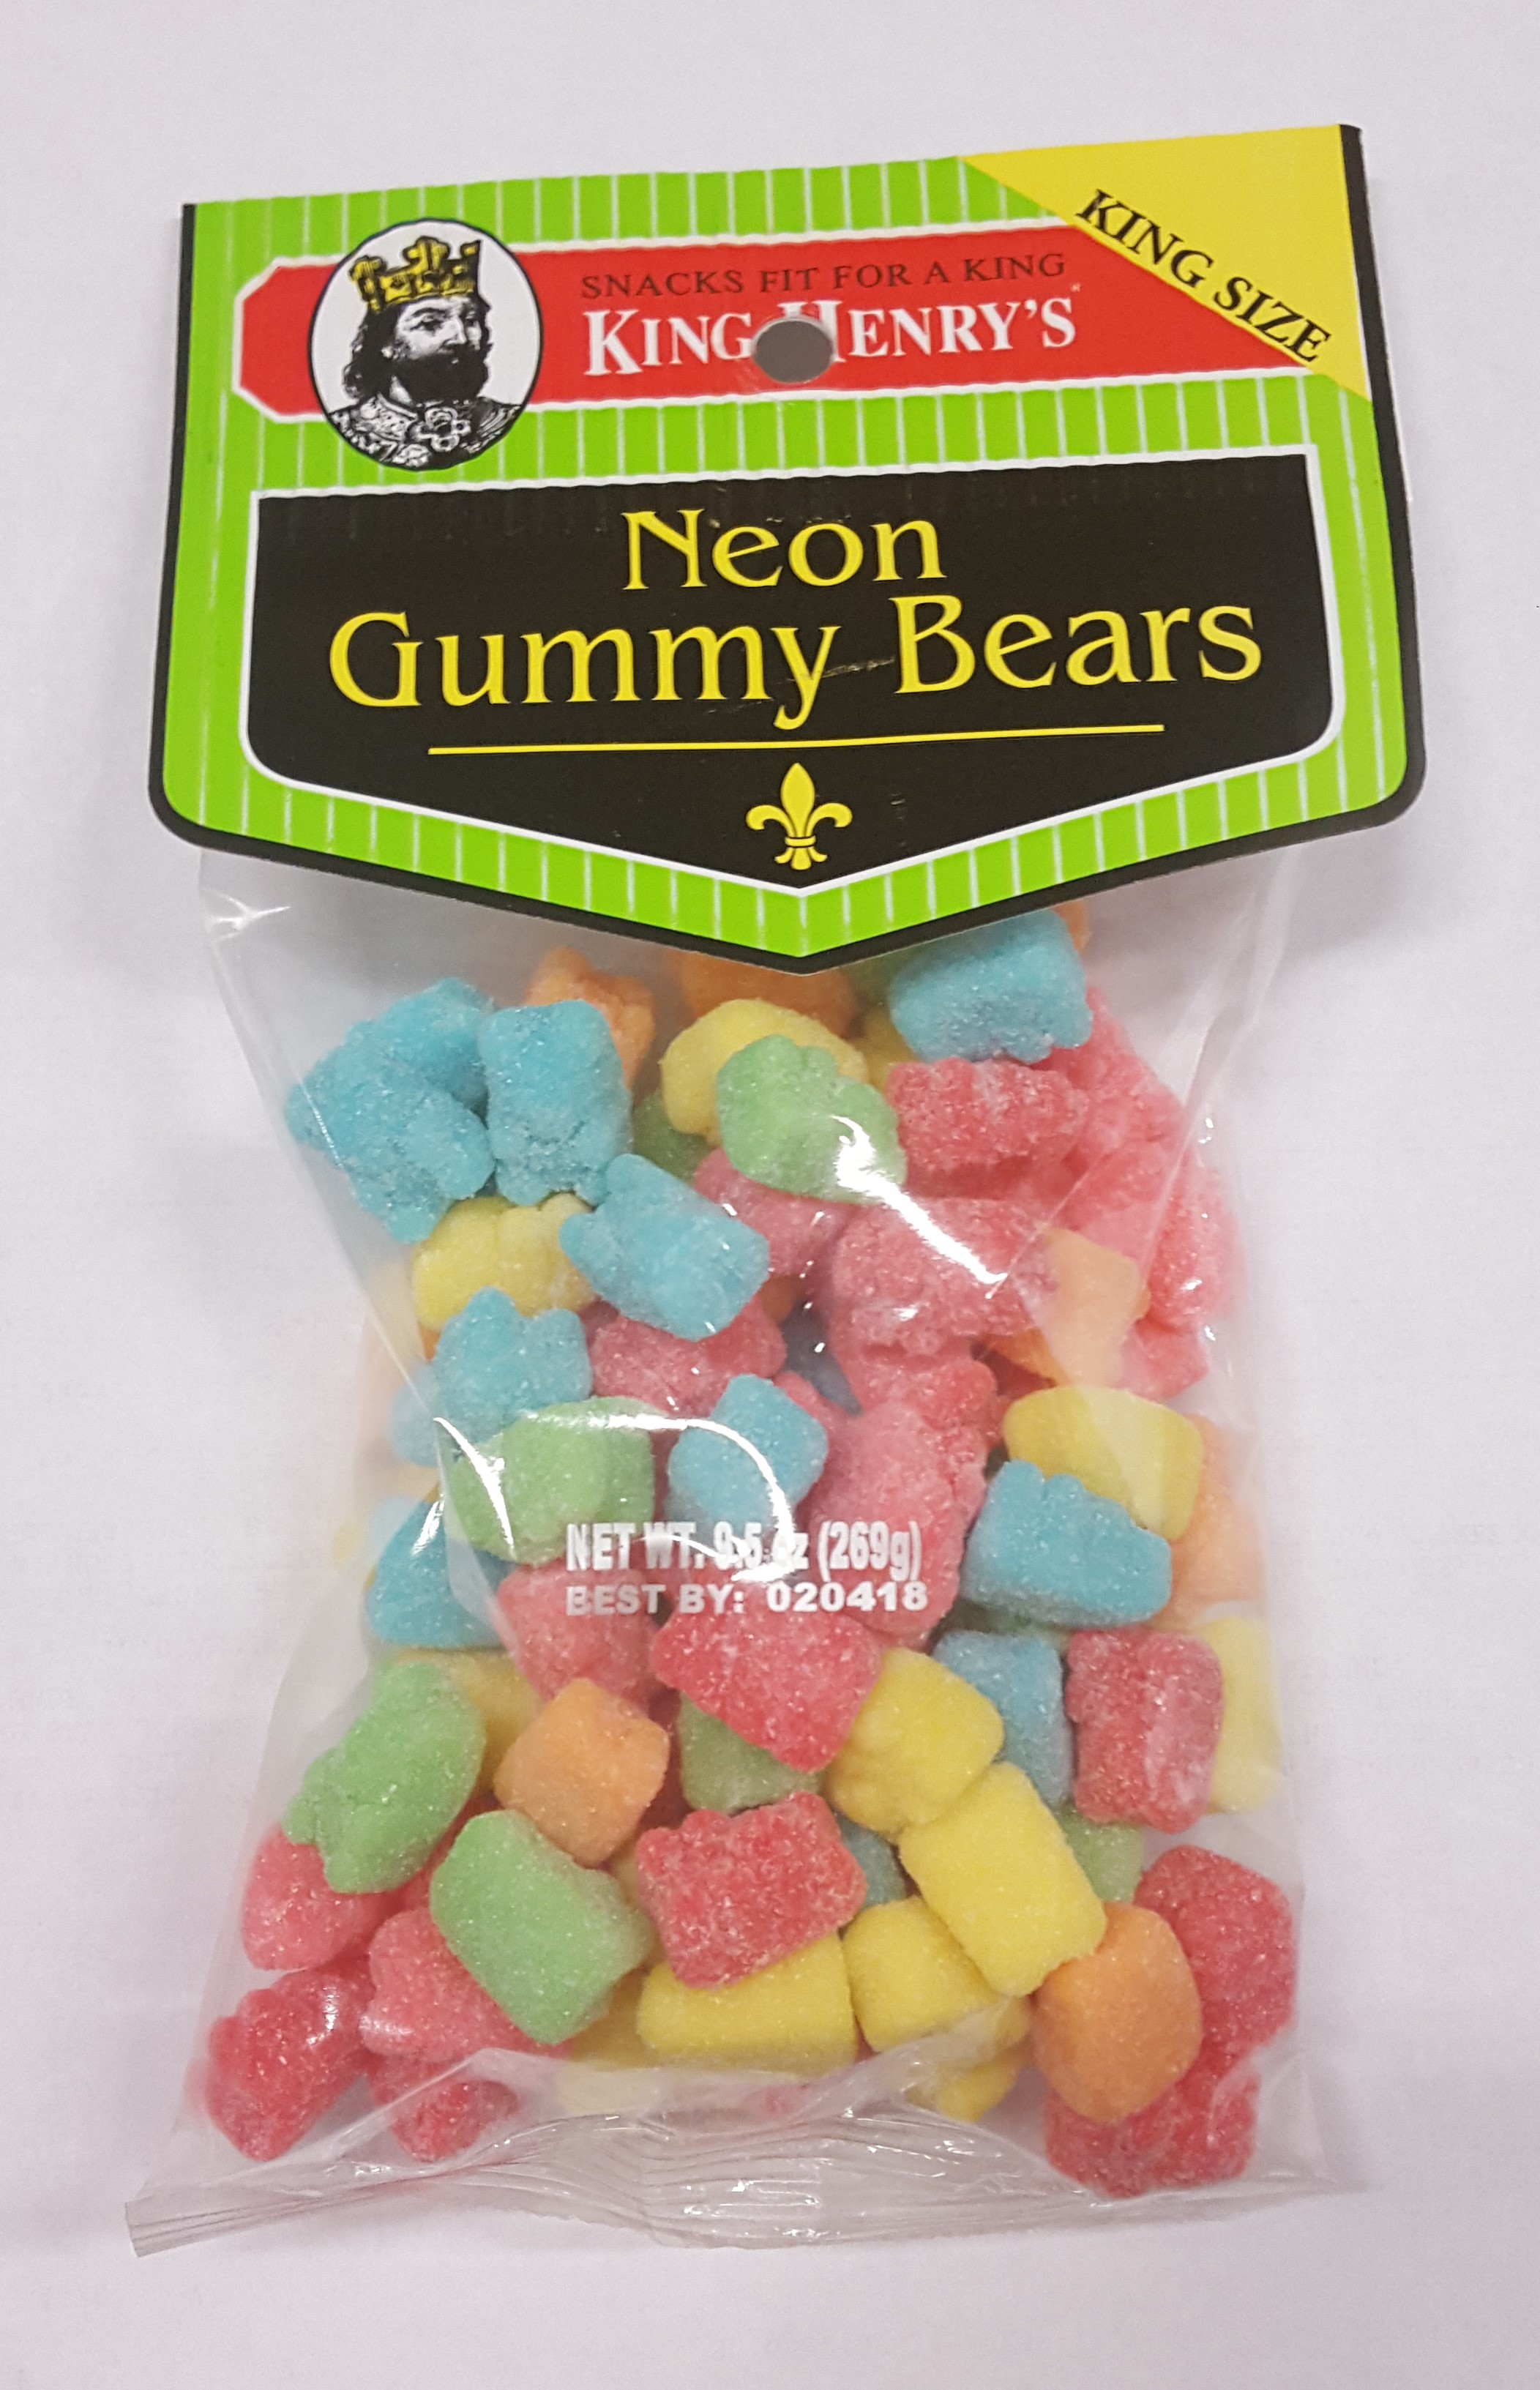 King Henry's Neon Gummy Bears